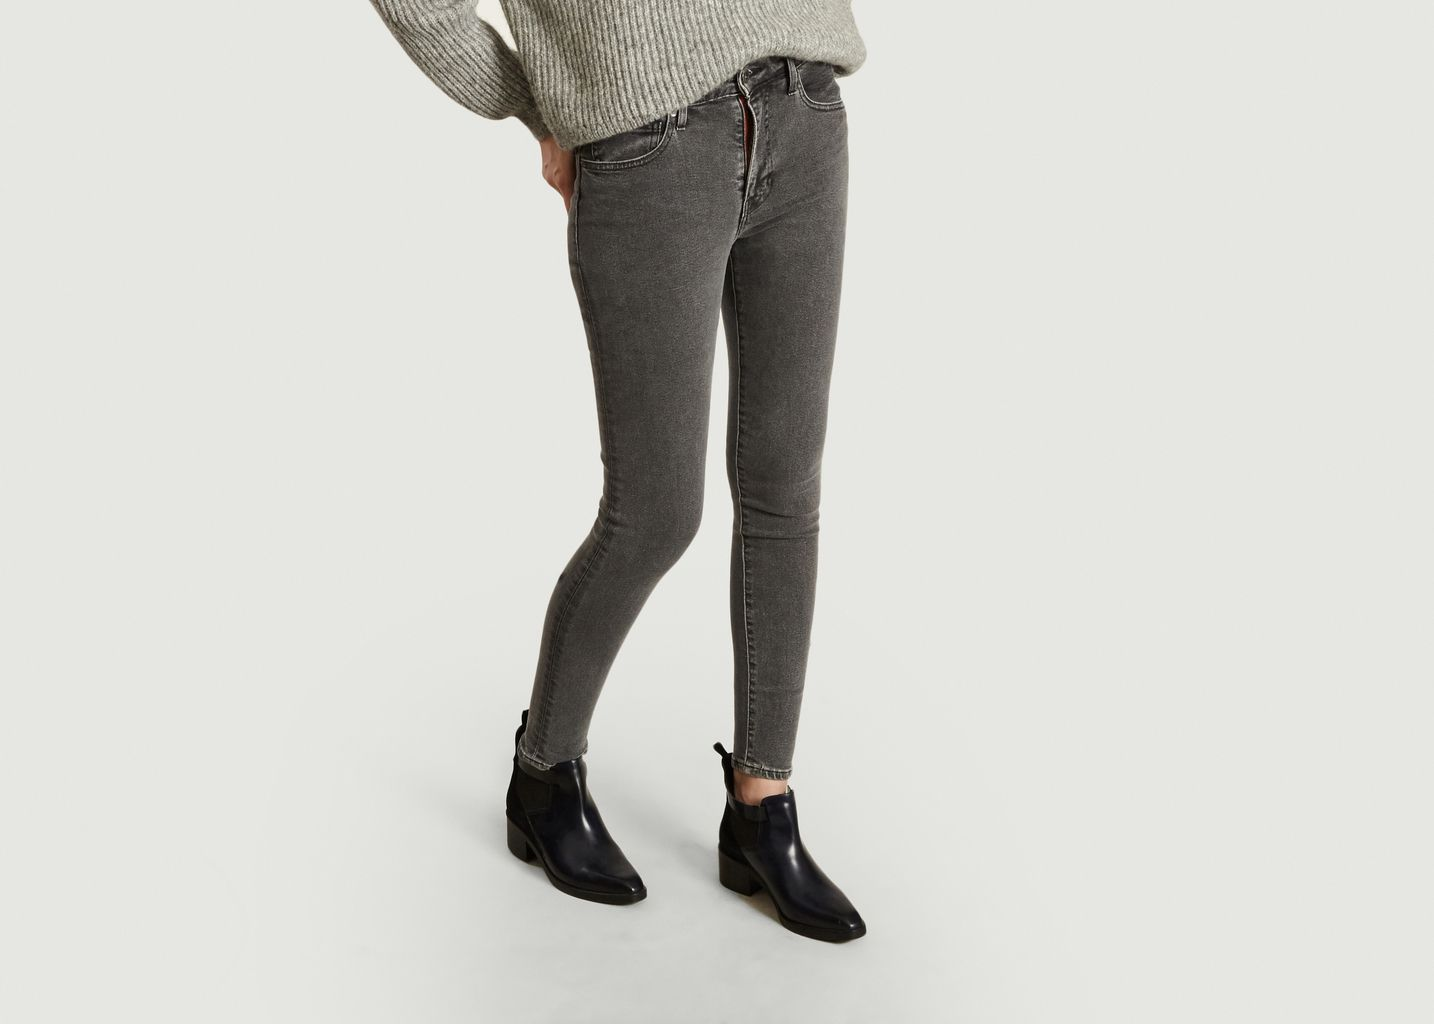 Jean Teinté Skinny 7/8e 721 - Levi's Made and Crafted